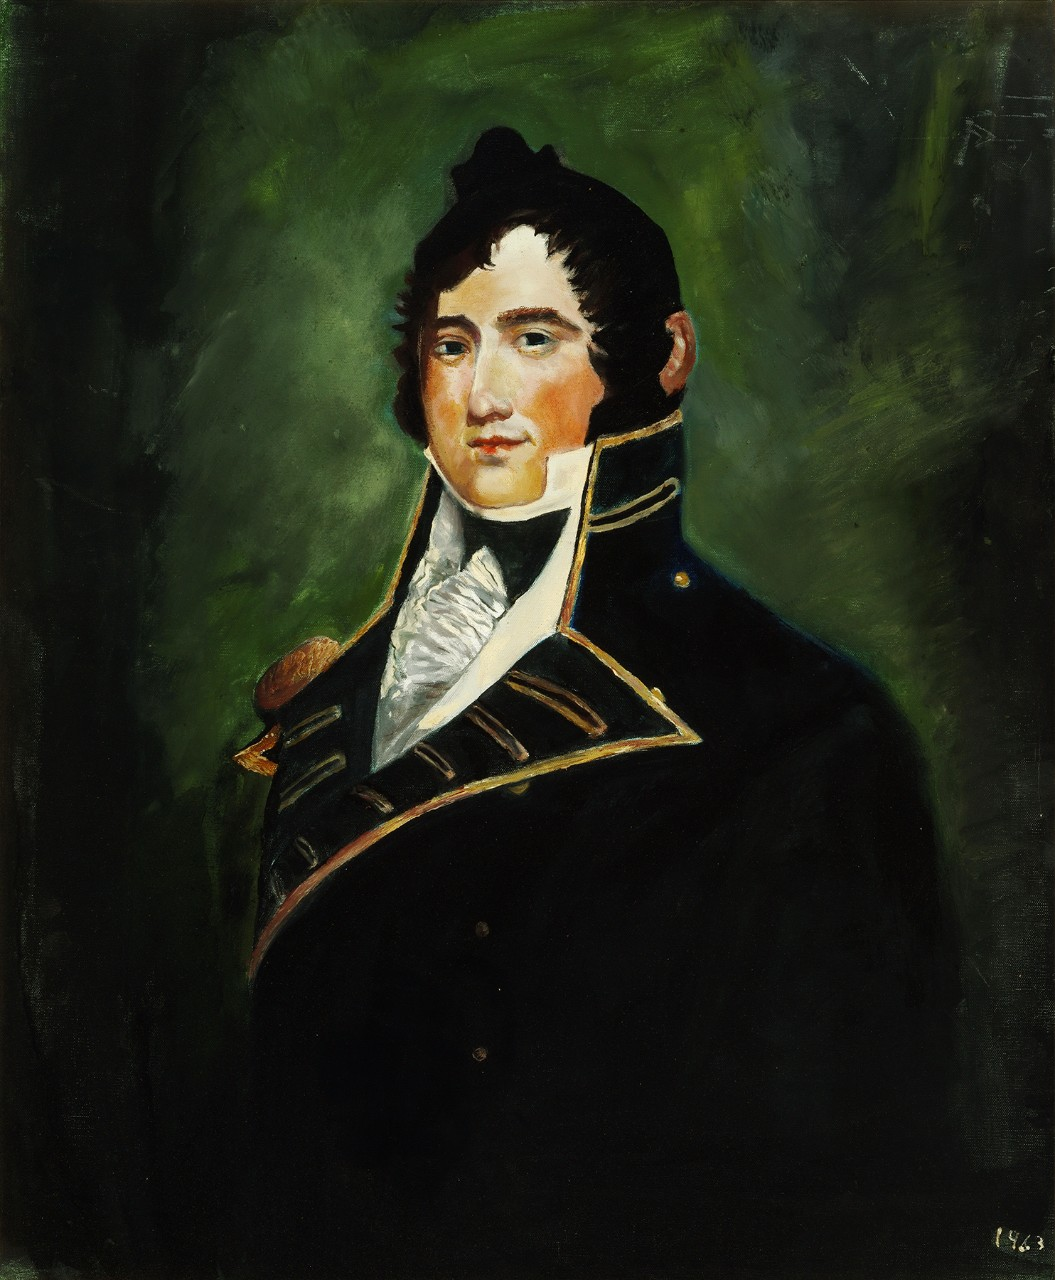 Portrait of James Lawrence with a green background